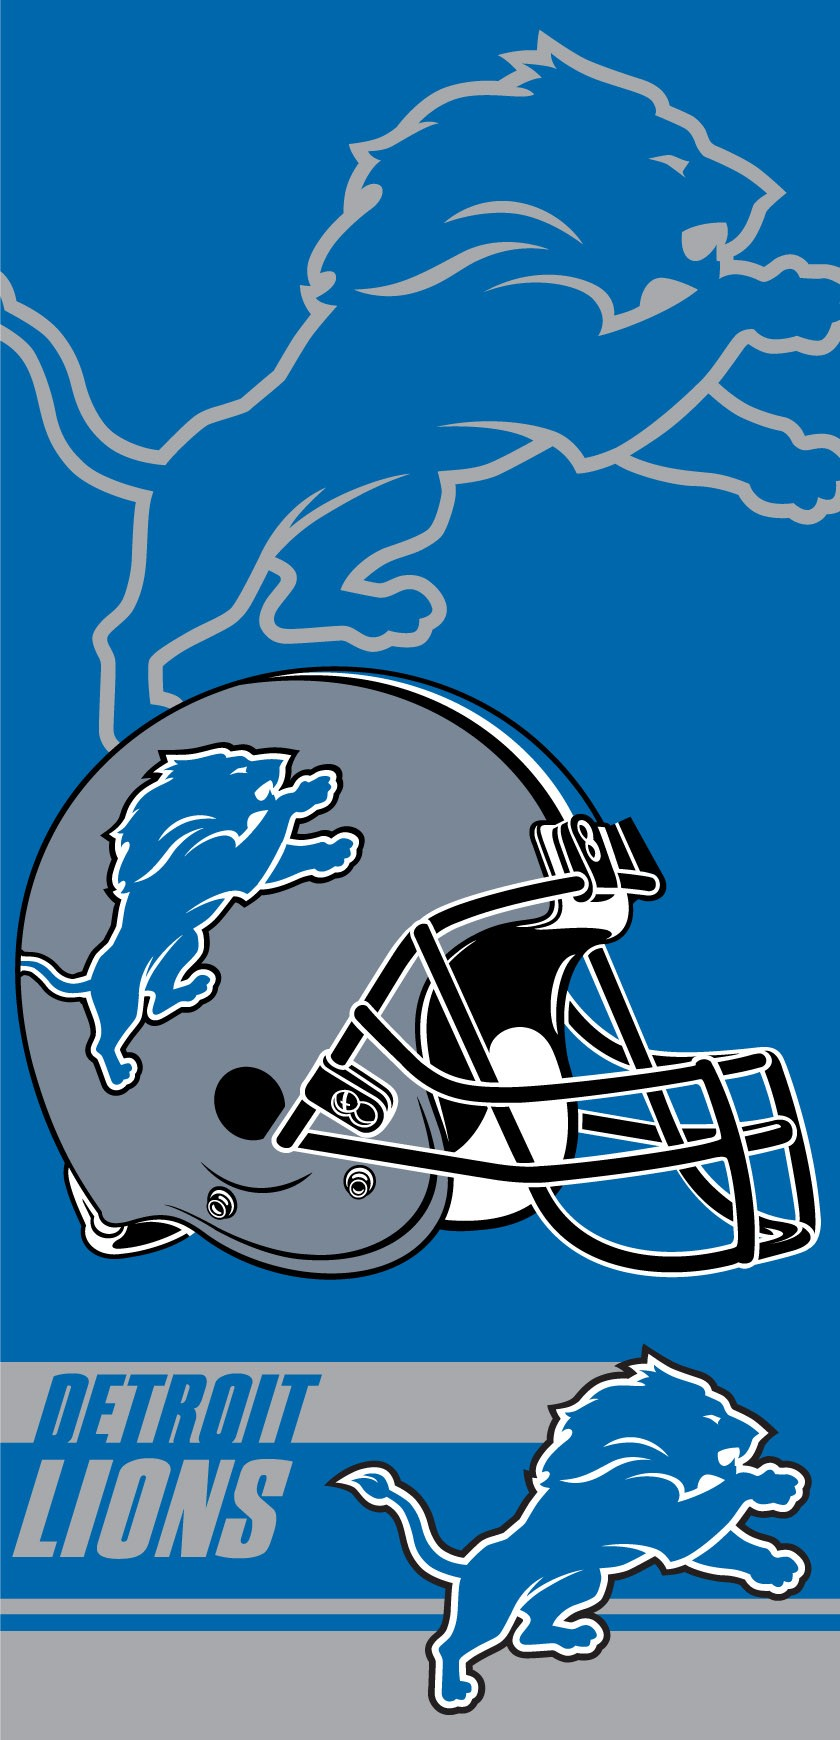 Detroit Lions Double Covered